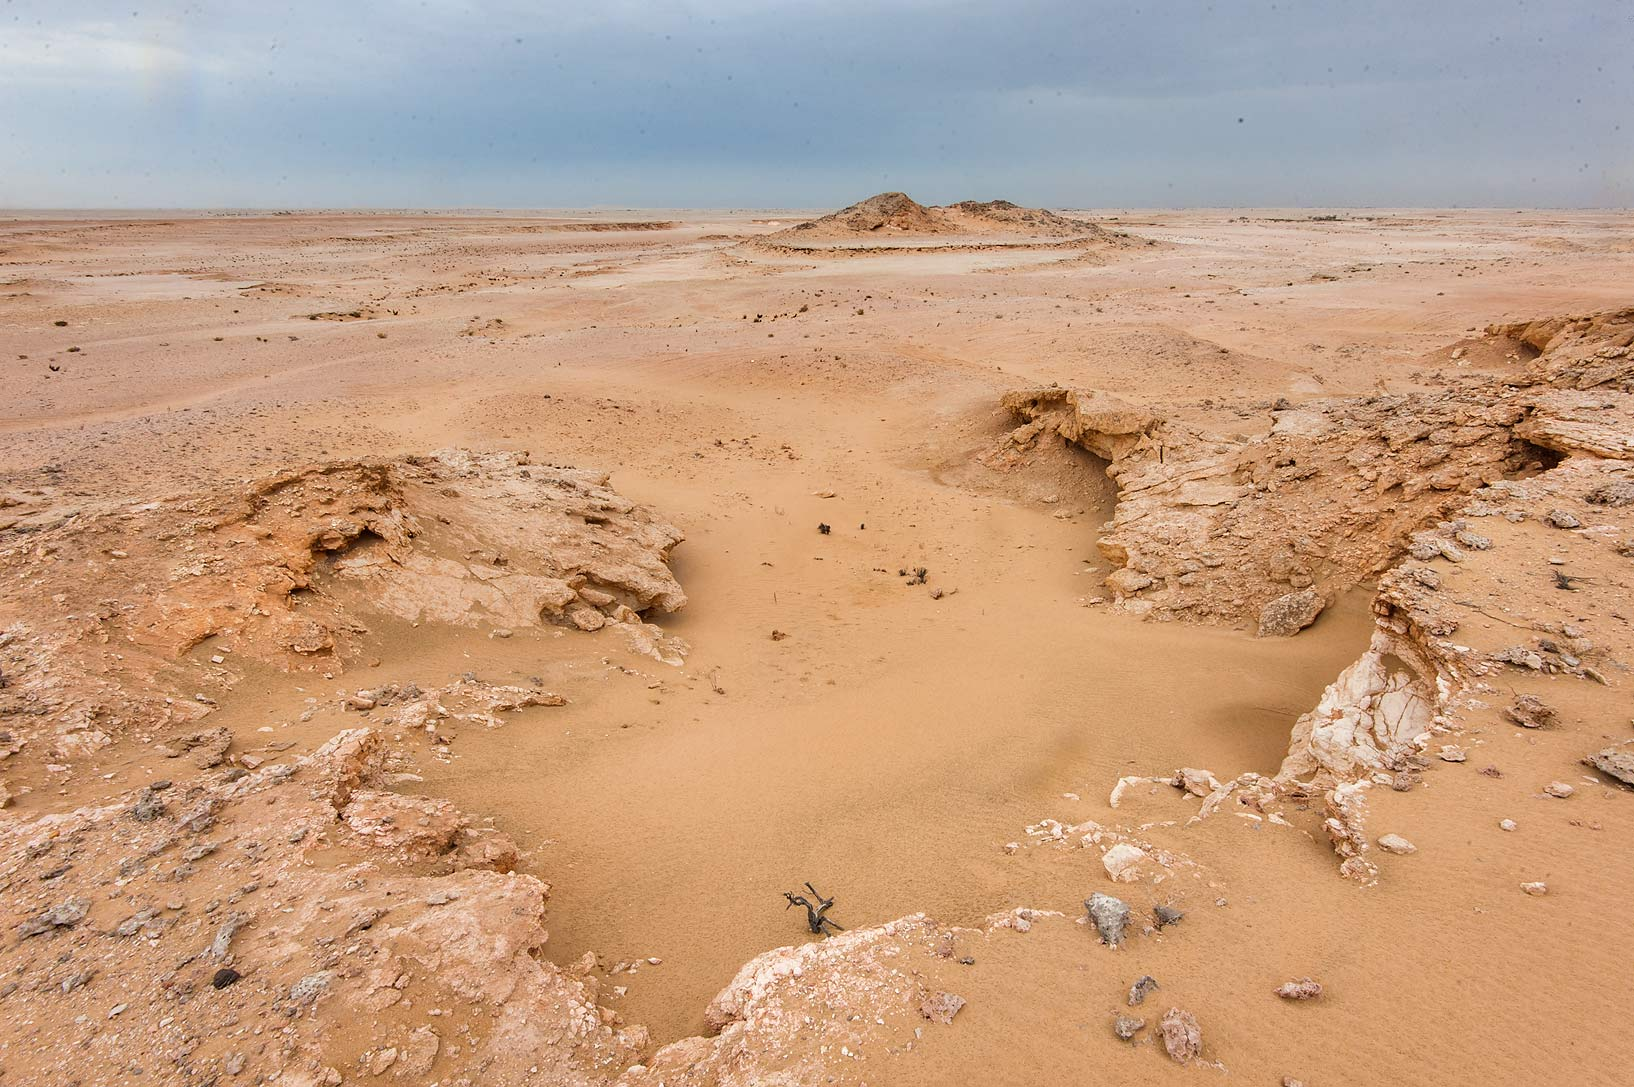 Sandy runnel from a mountain slope in Harrarah (Al Kharrarah). Southern Qatar